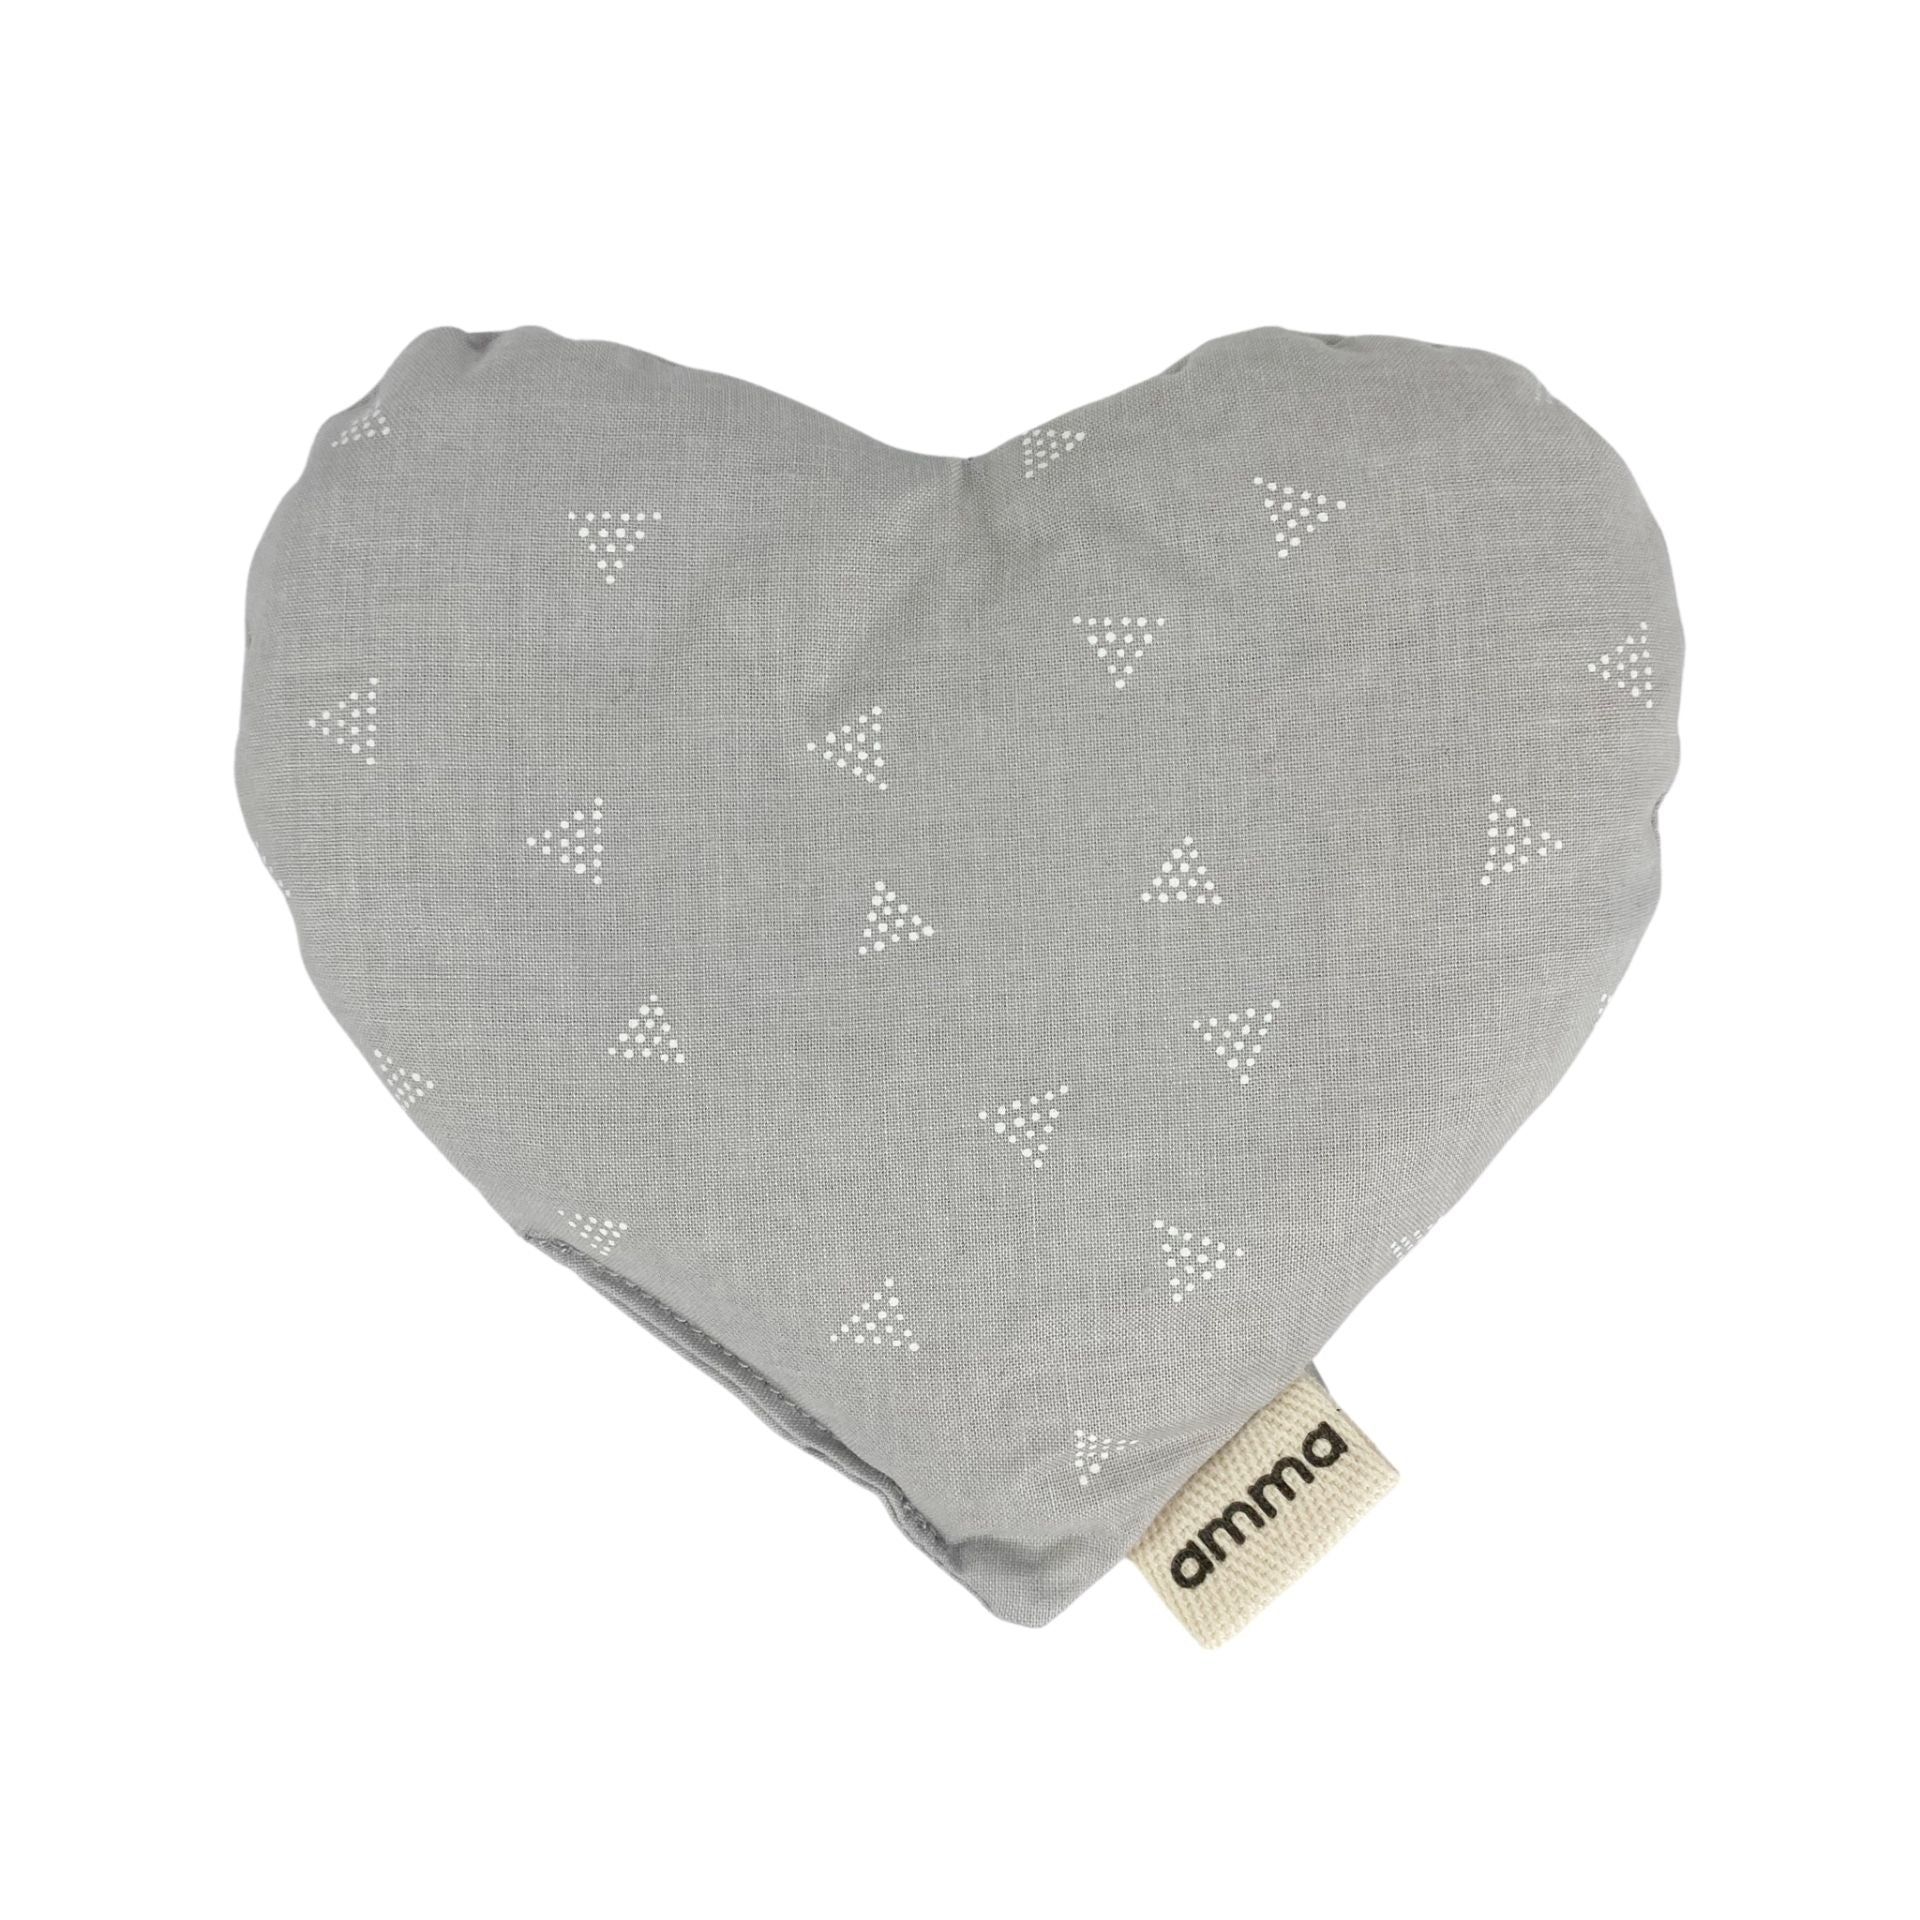 Heart Shaped with Grey Triangles Compress Used Hot or Cold